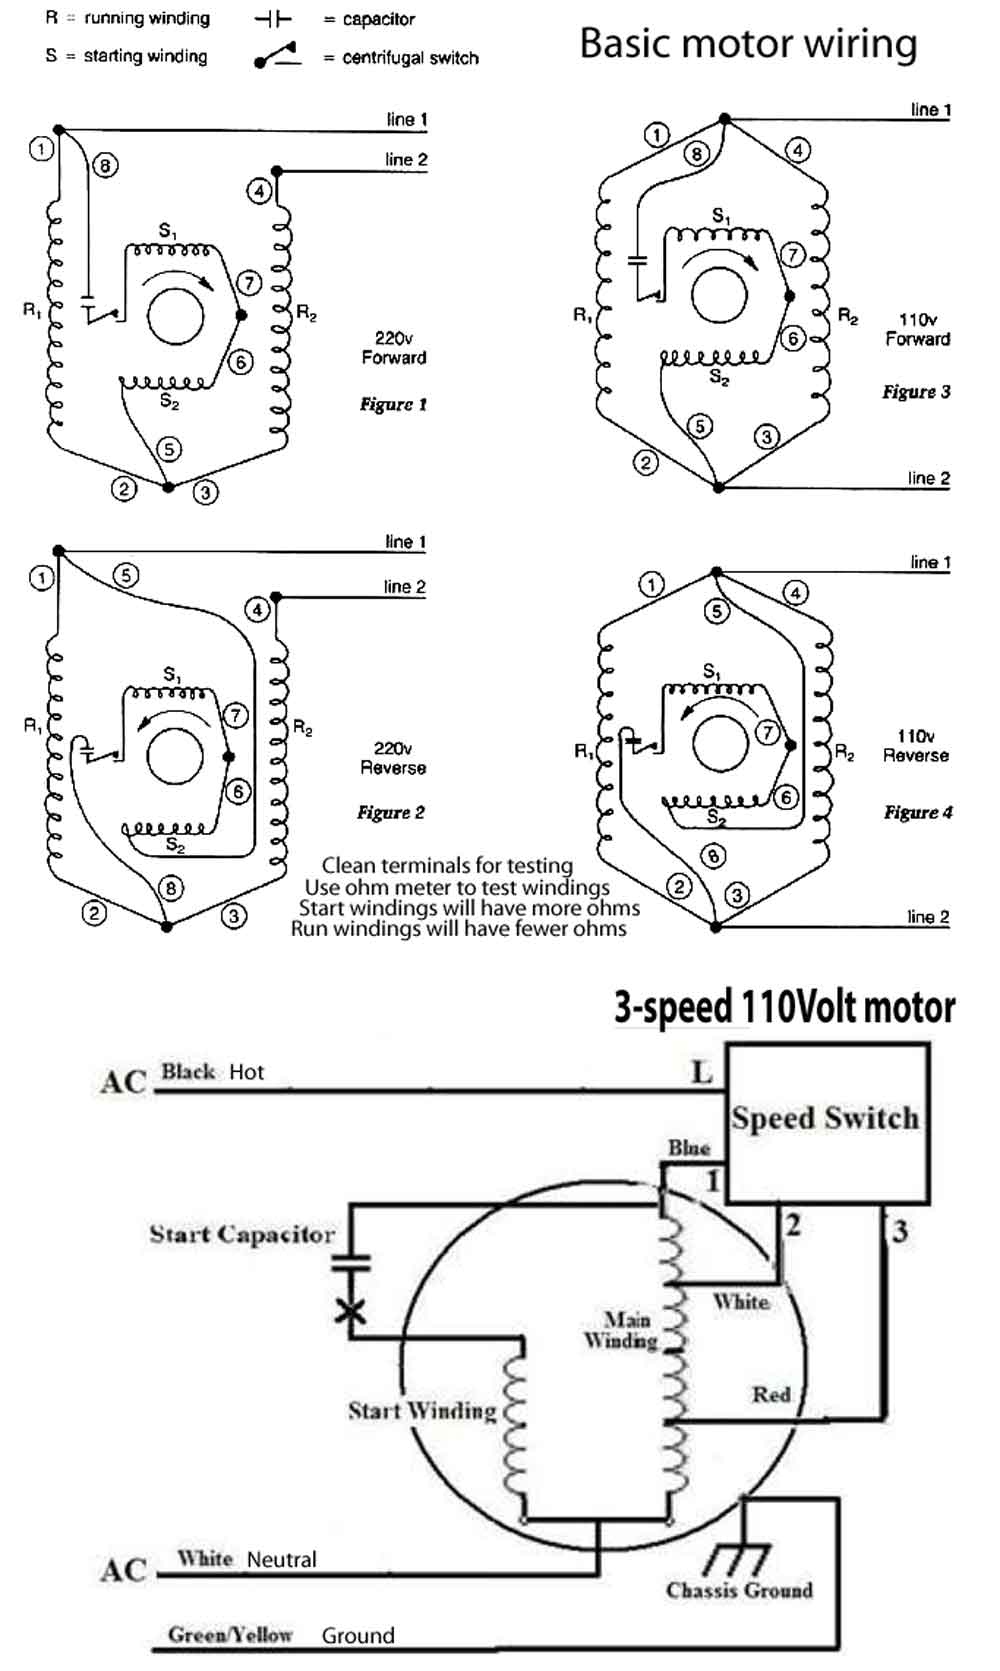 How To Wire 3-Speed Fan Switch - 3 Speed Fan Motor Wiring Diagram